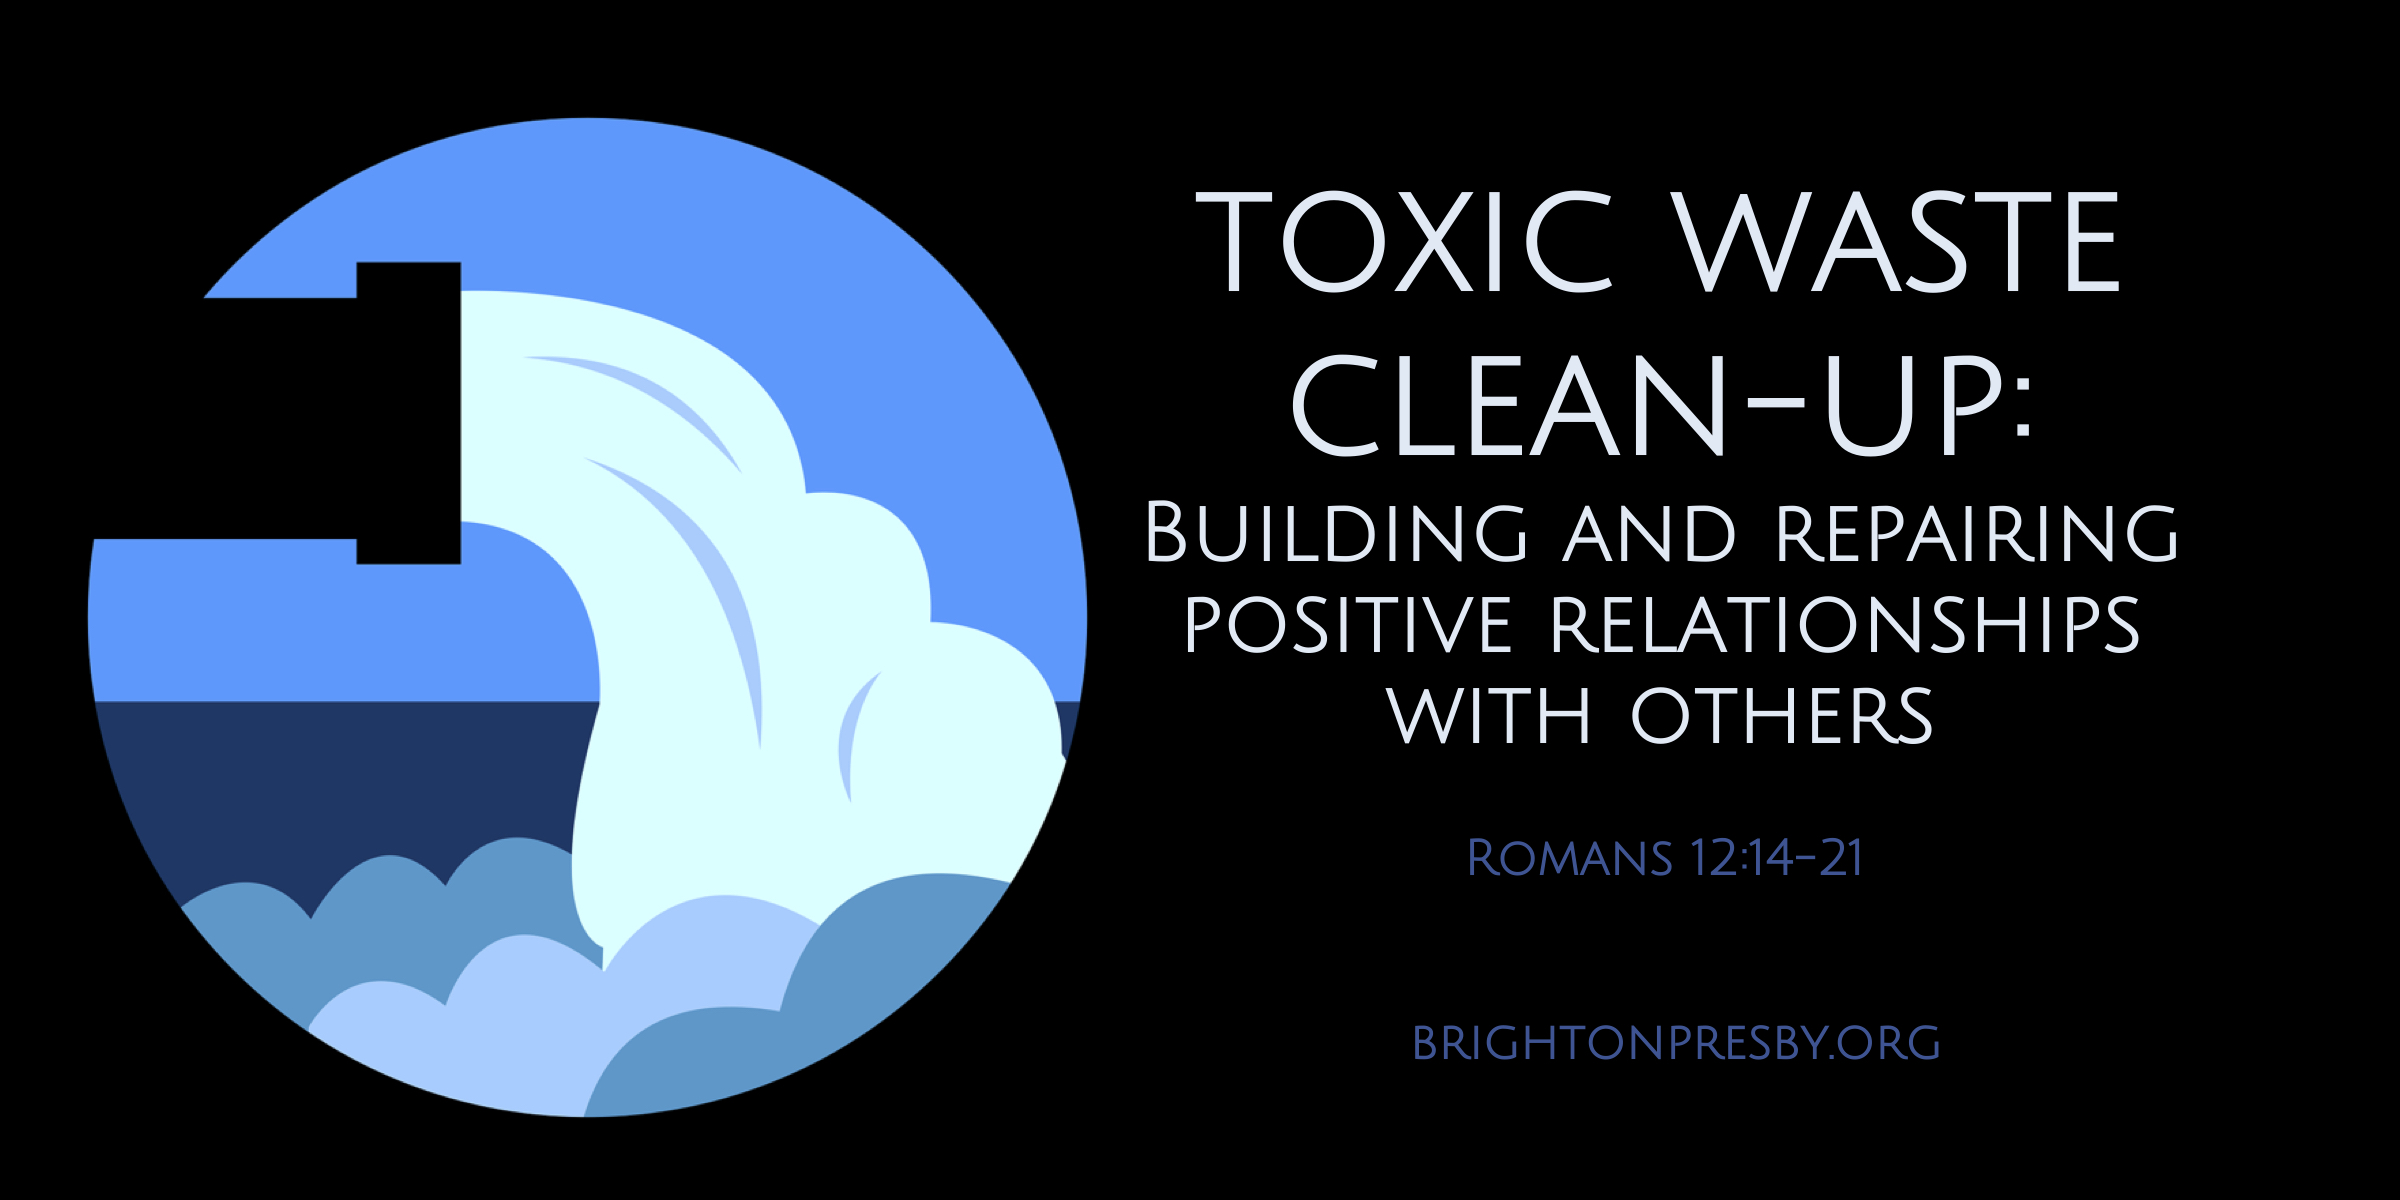 Toxic Waste Cleanup: Building and Repairing Relationships